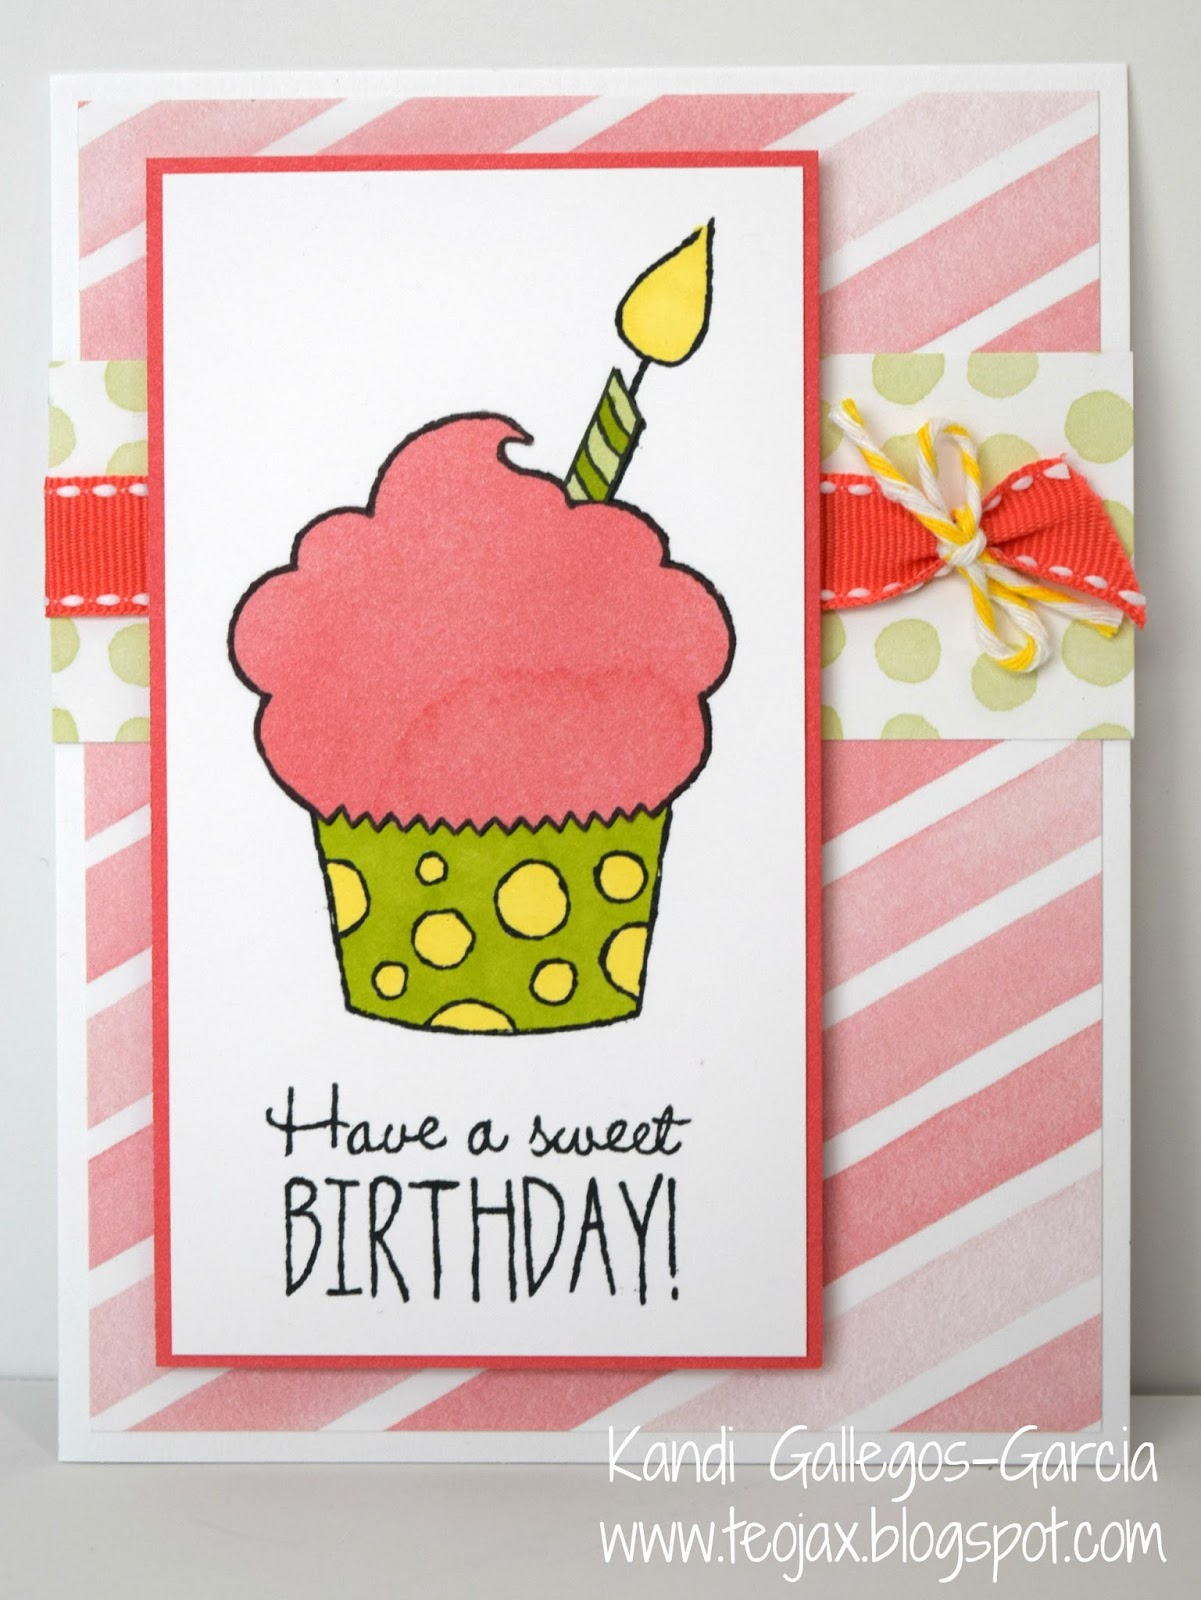 Teojax Have A Sweet Birthday Cupcake Card